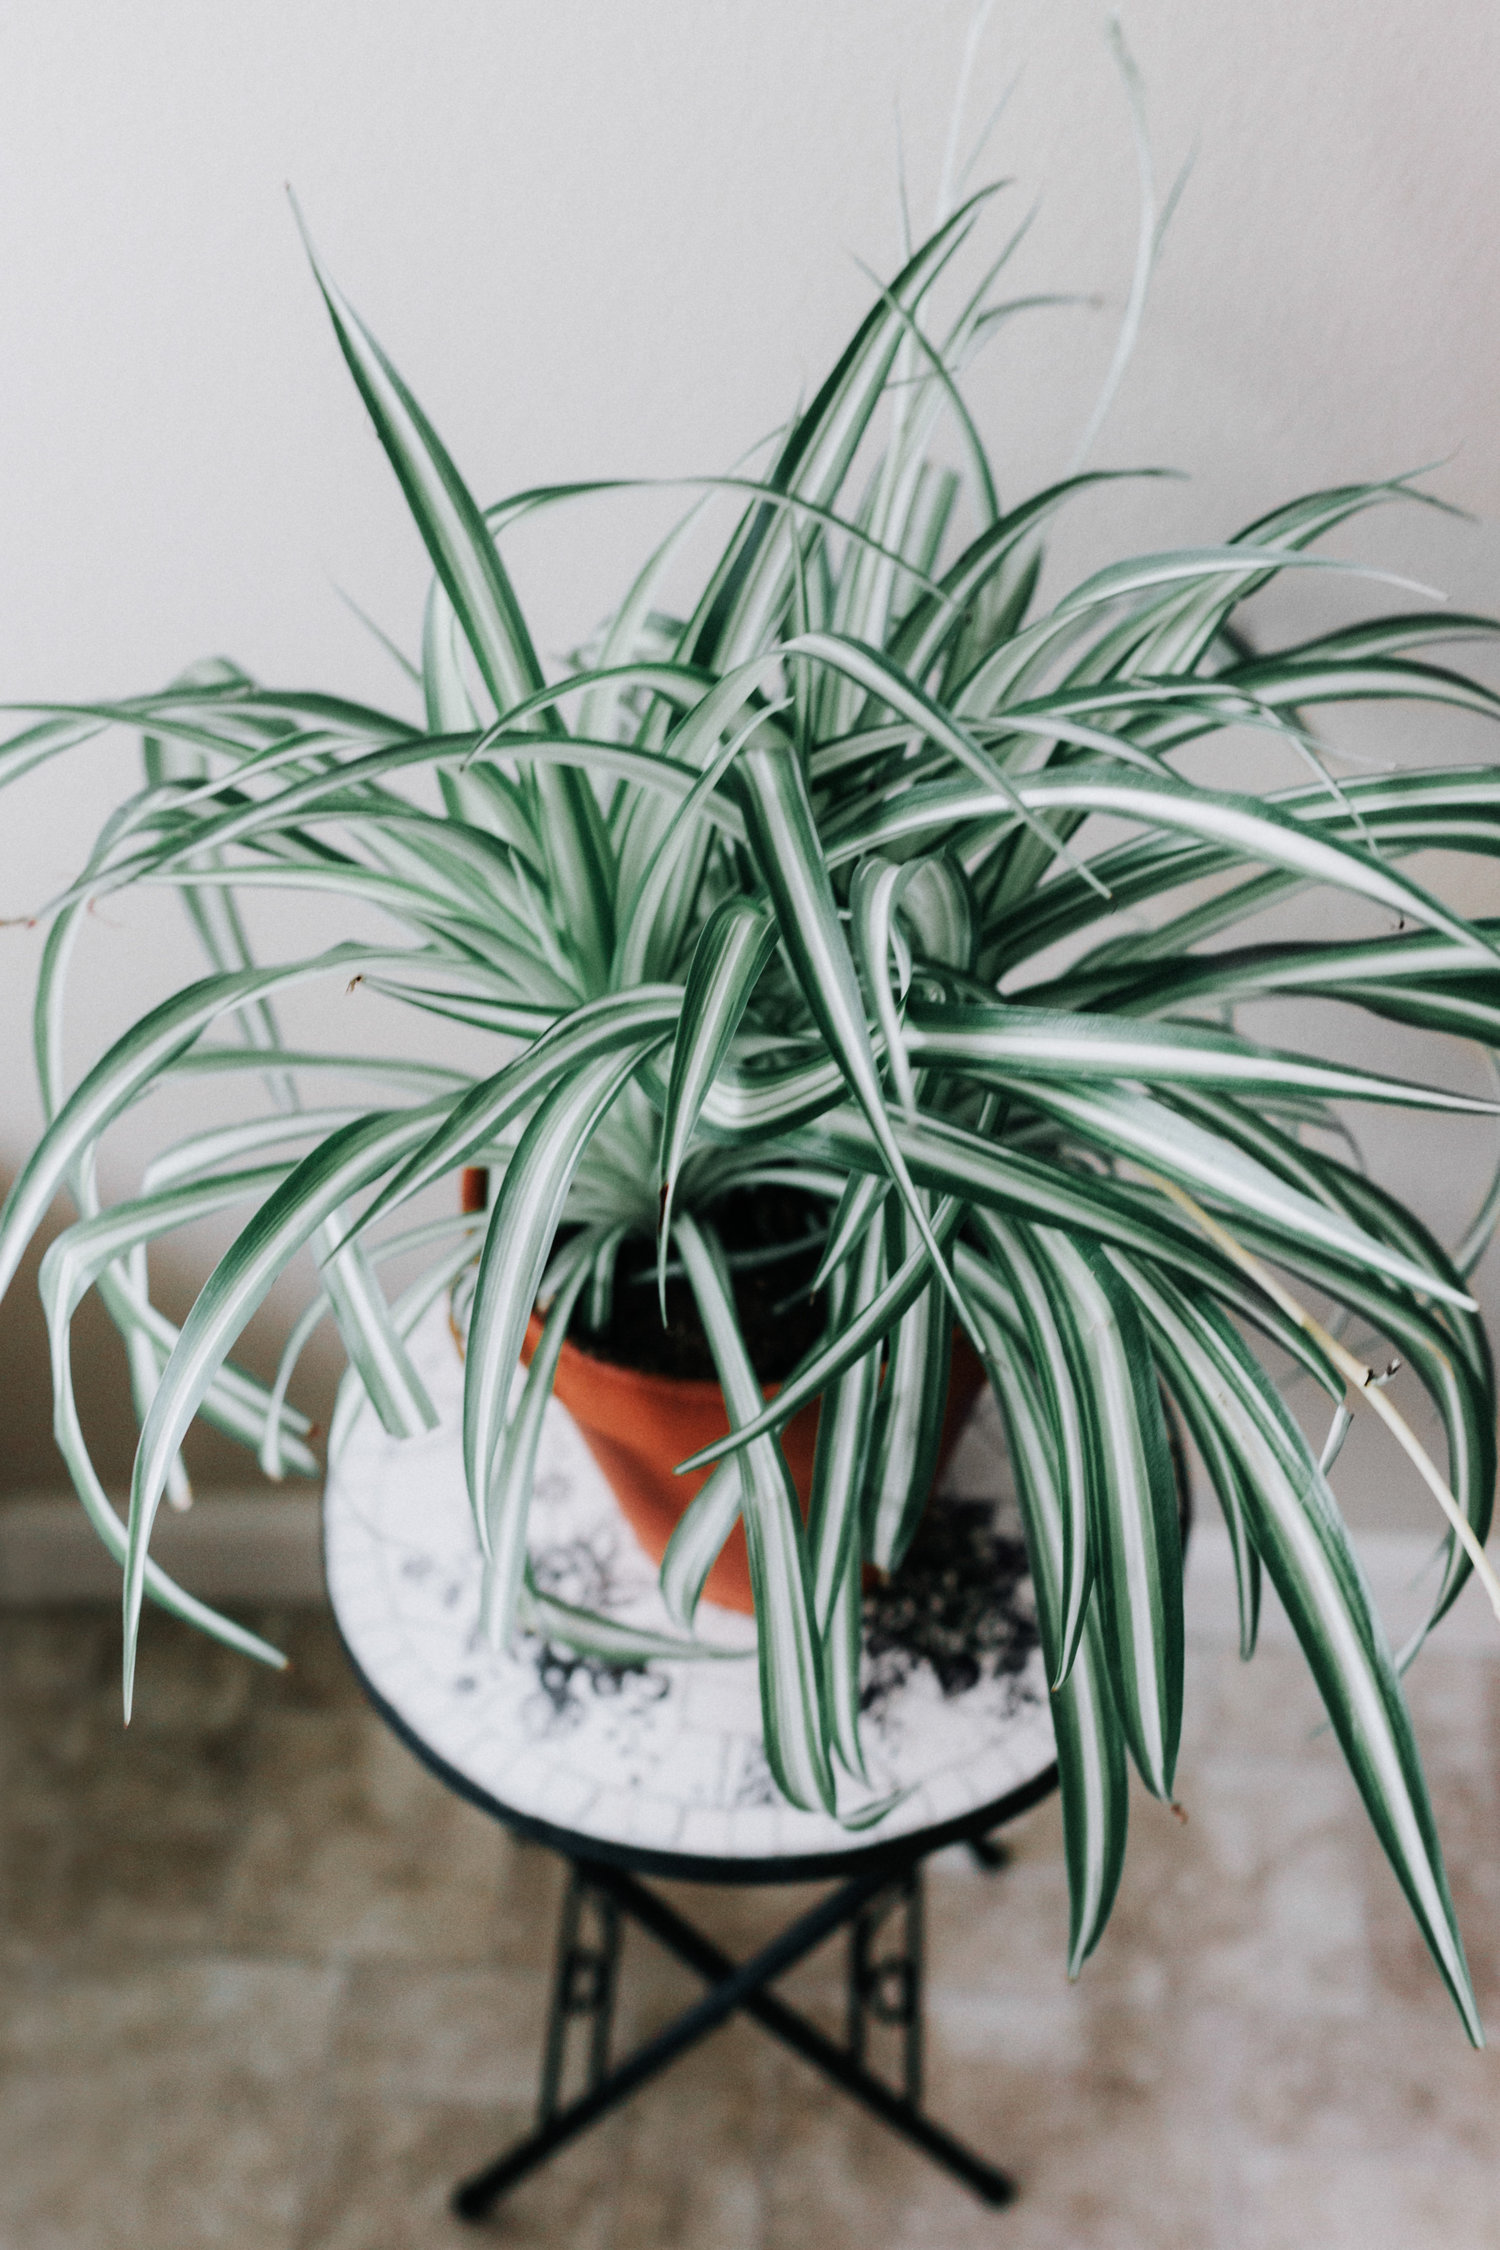 Spider Plant Chlorophytum Comosum Houseplant Academy Houseplant Courses And Education For The Indoor Plant Person,Best Dishwasher